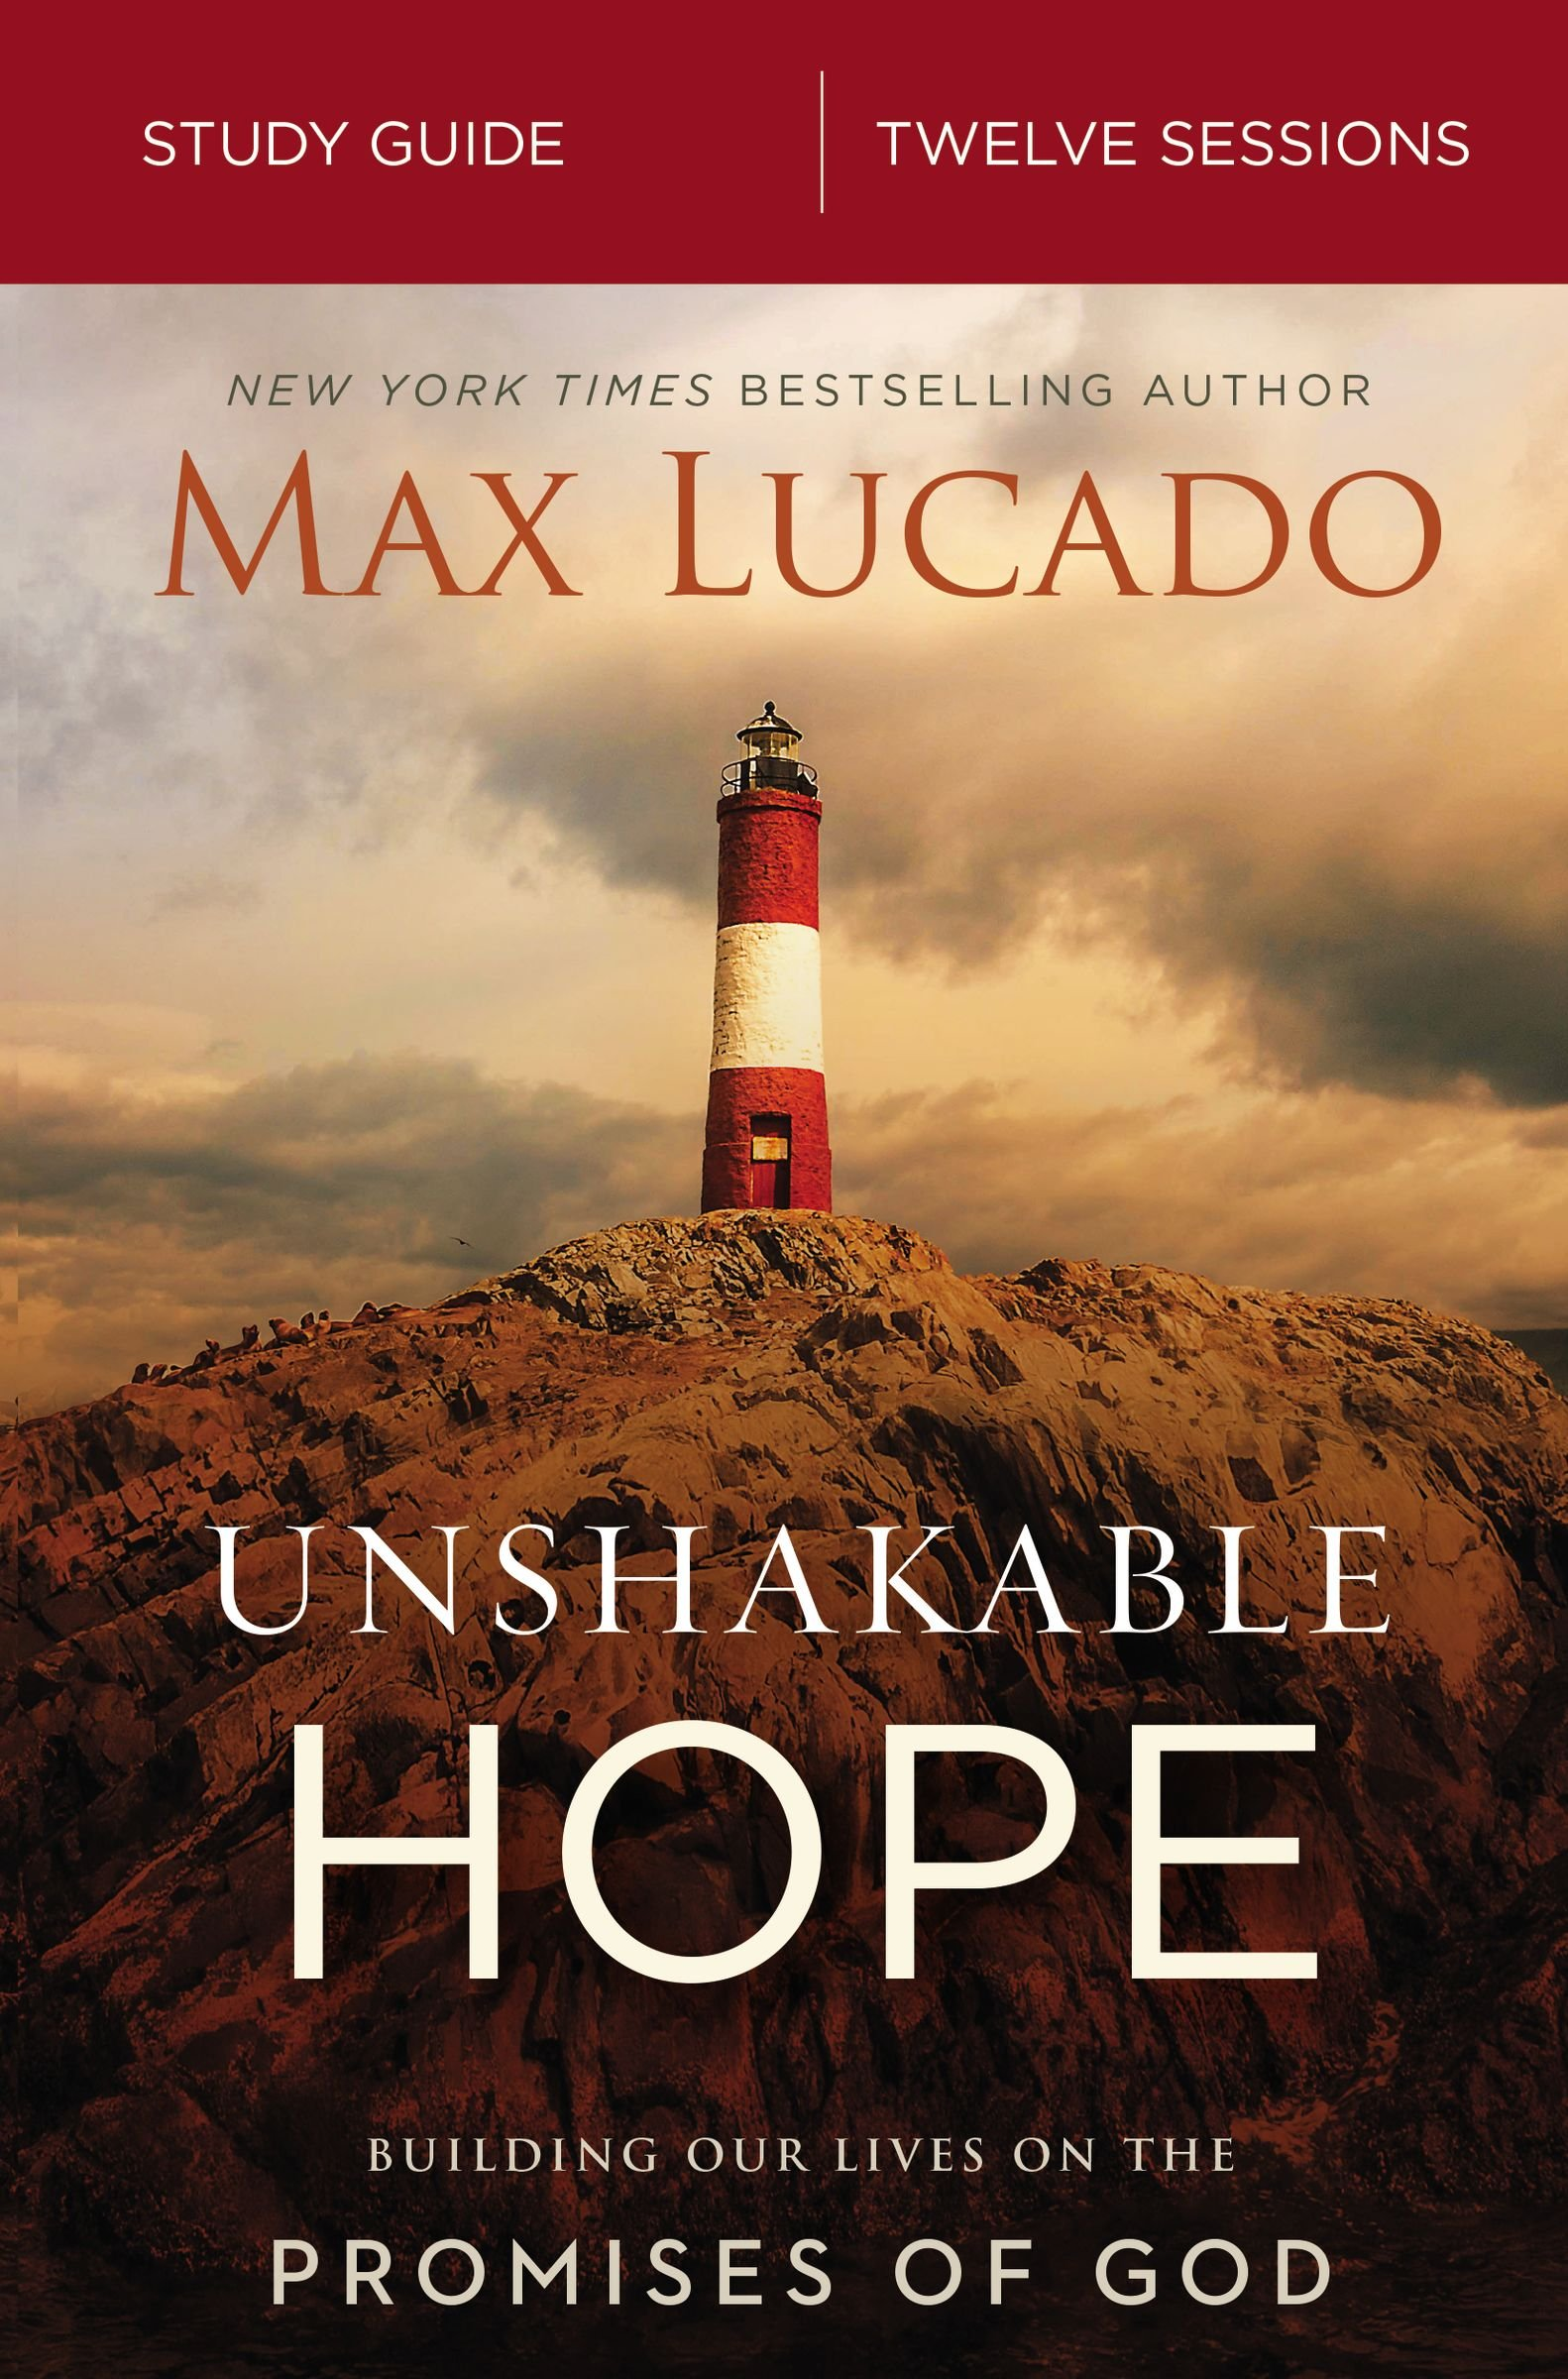 Unshakable Hope Study Guide: Building Our Lives on the Promises of God: Max  Lucado: 9780310092094: Amazon.com: Books